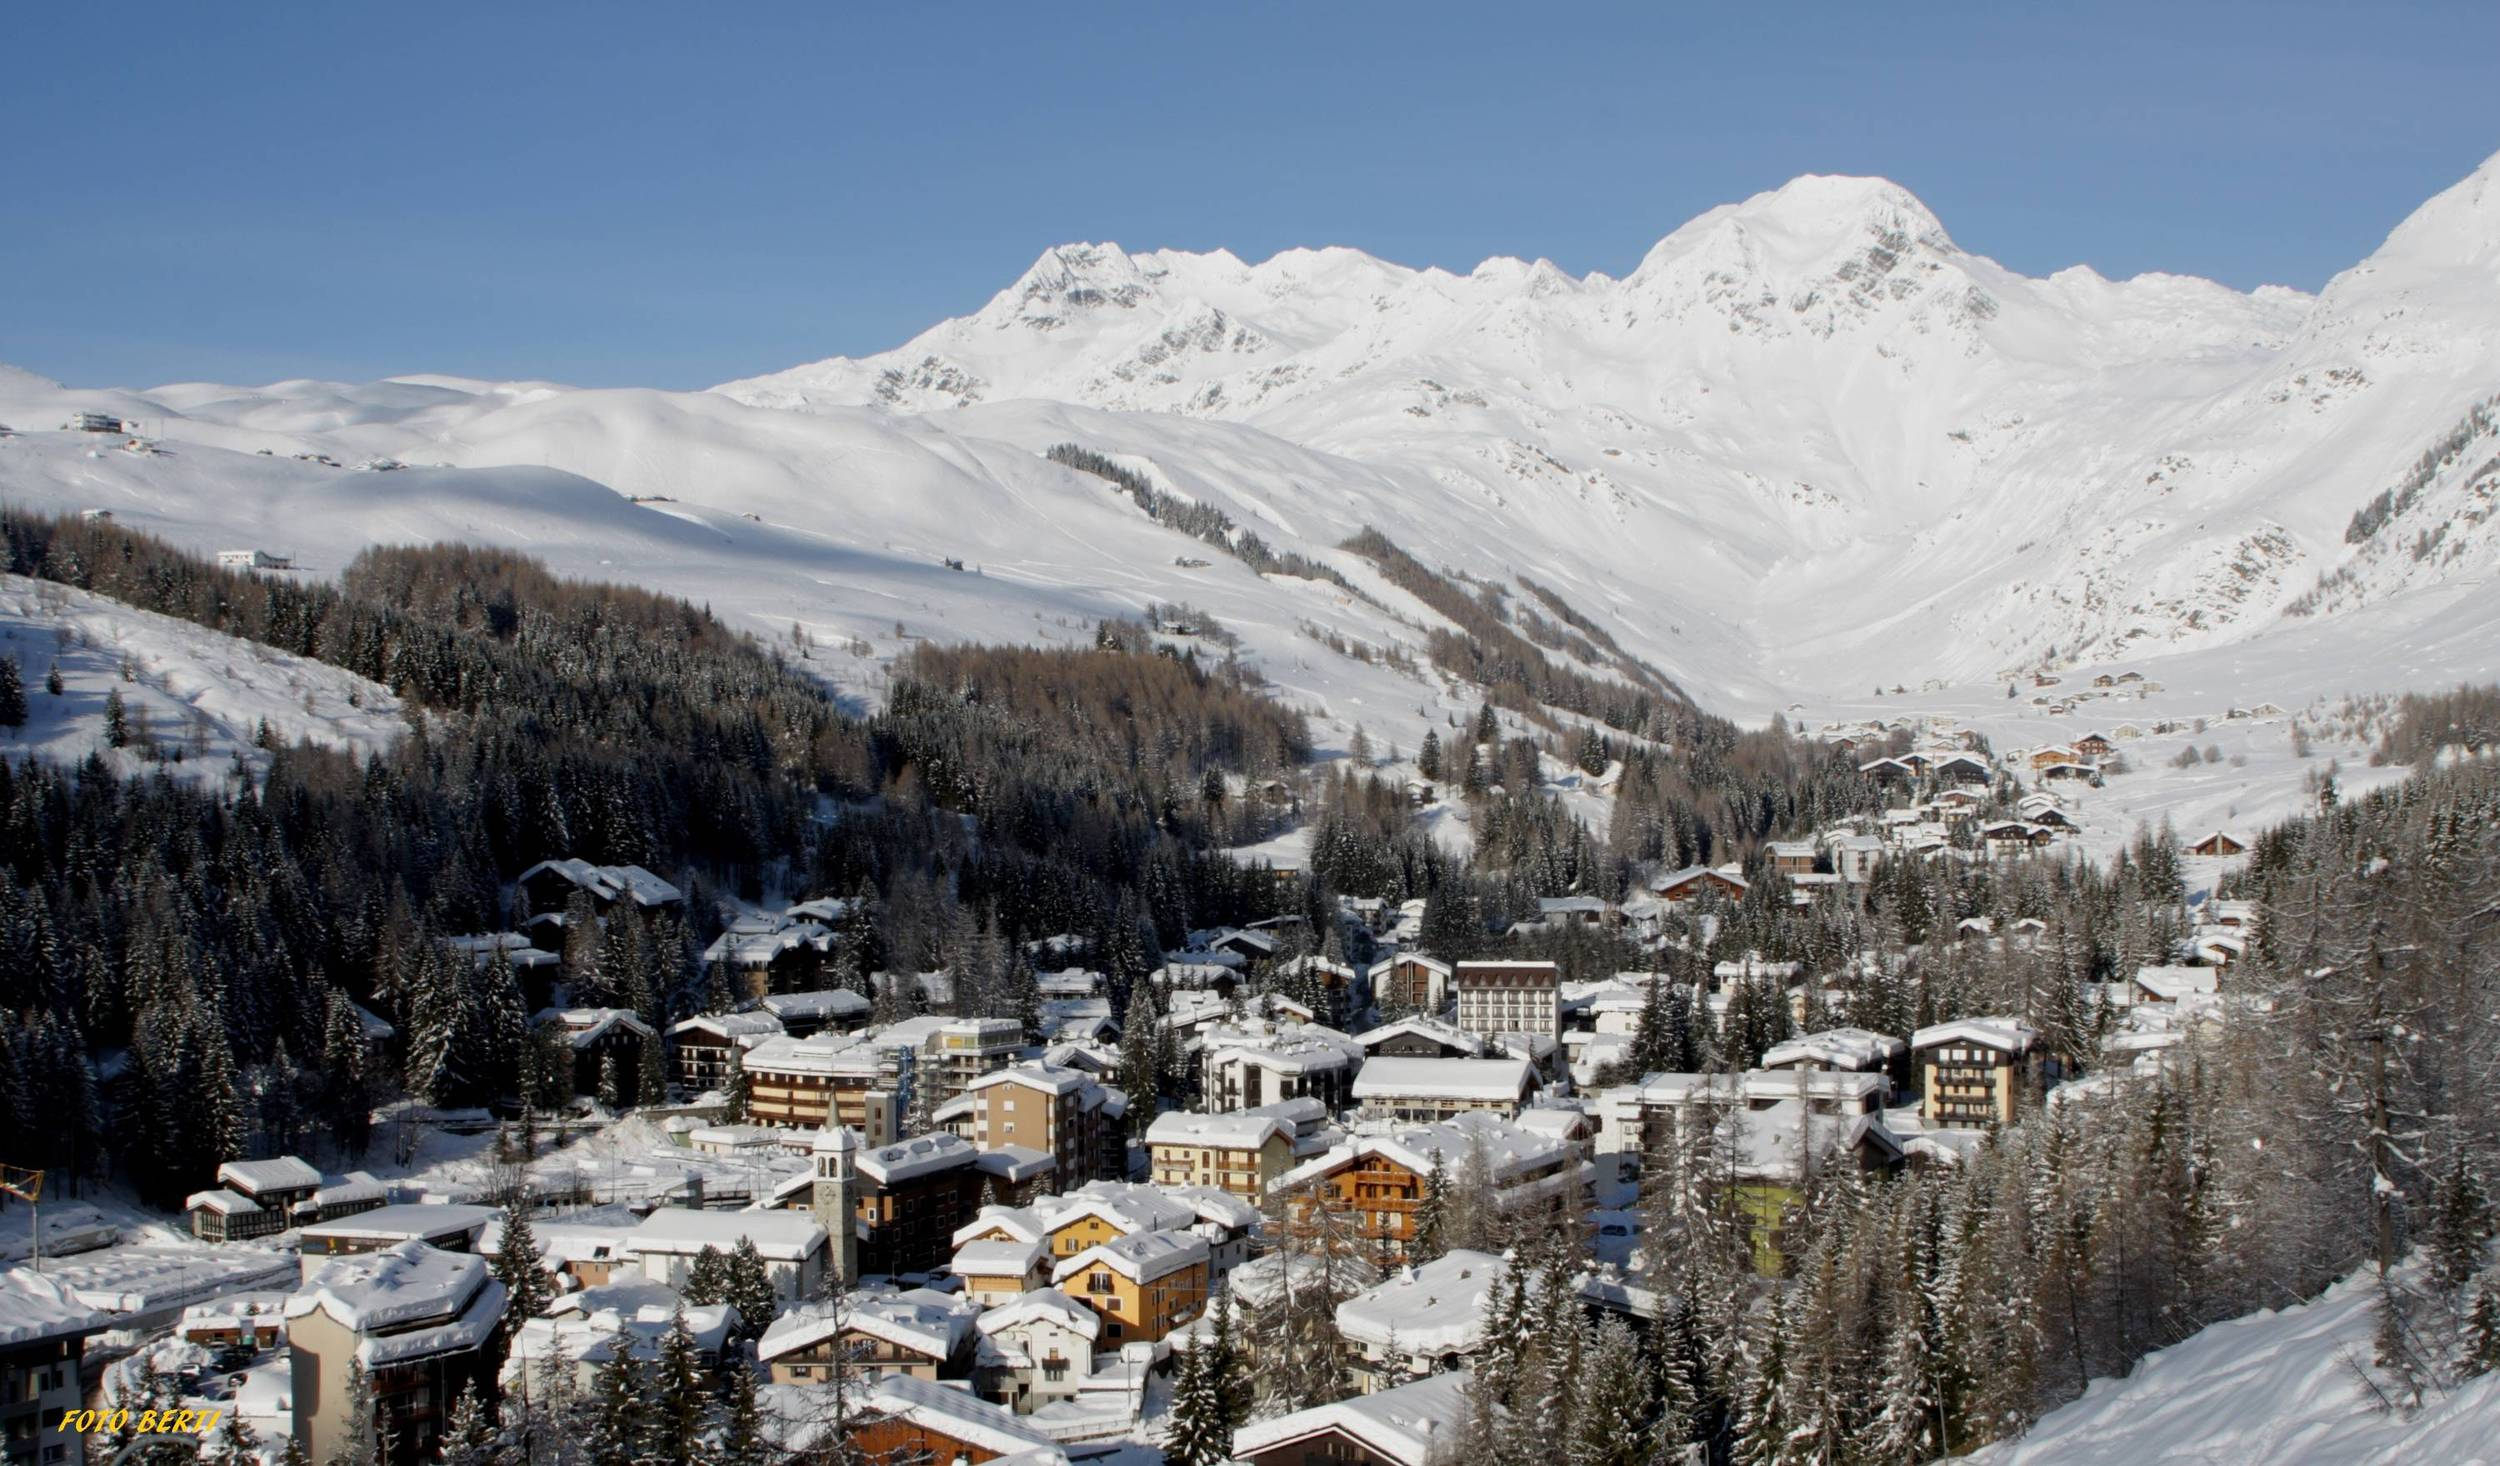 Madesimo Italy  city images : Ski holidays: Winter 2014 updates from slopes, hotels and chalets ...